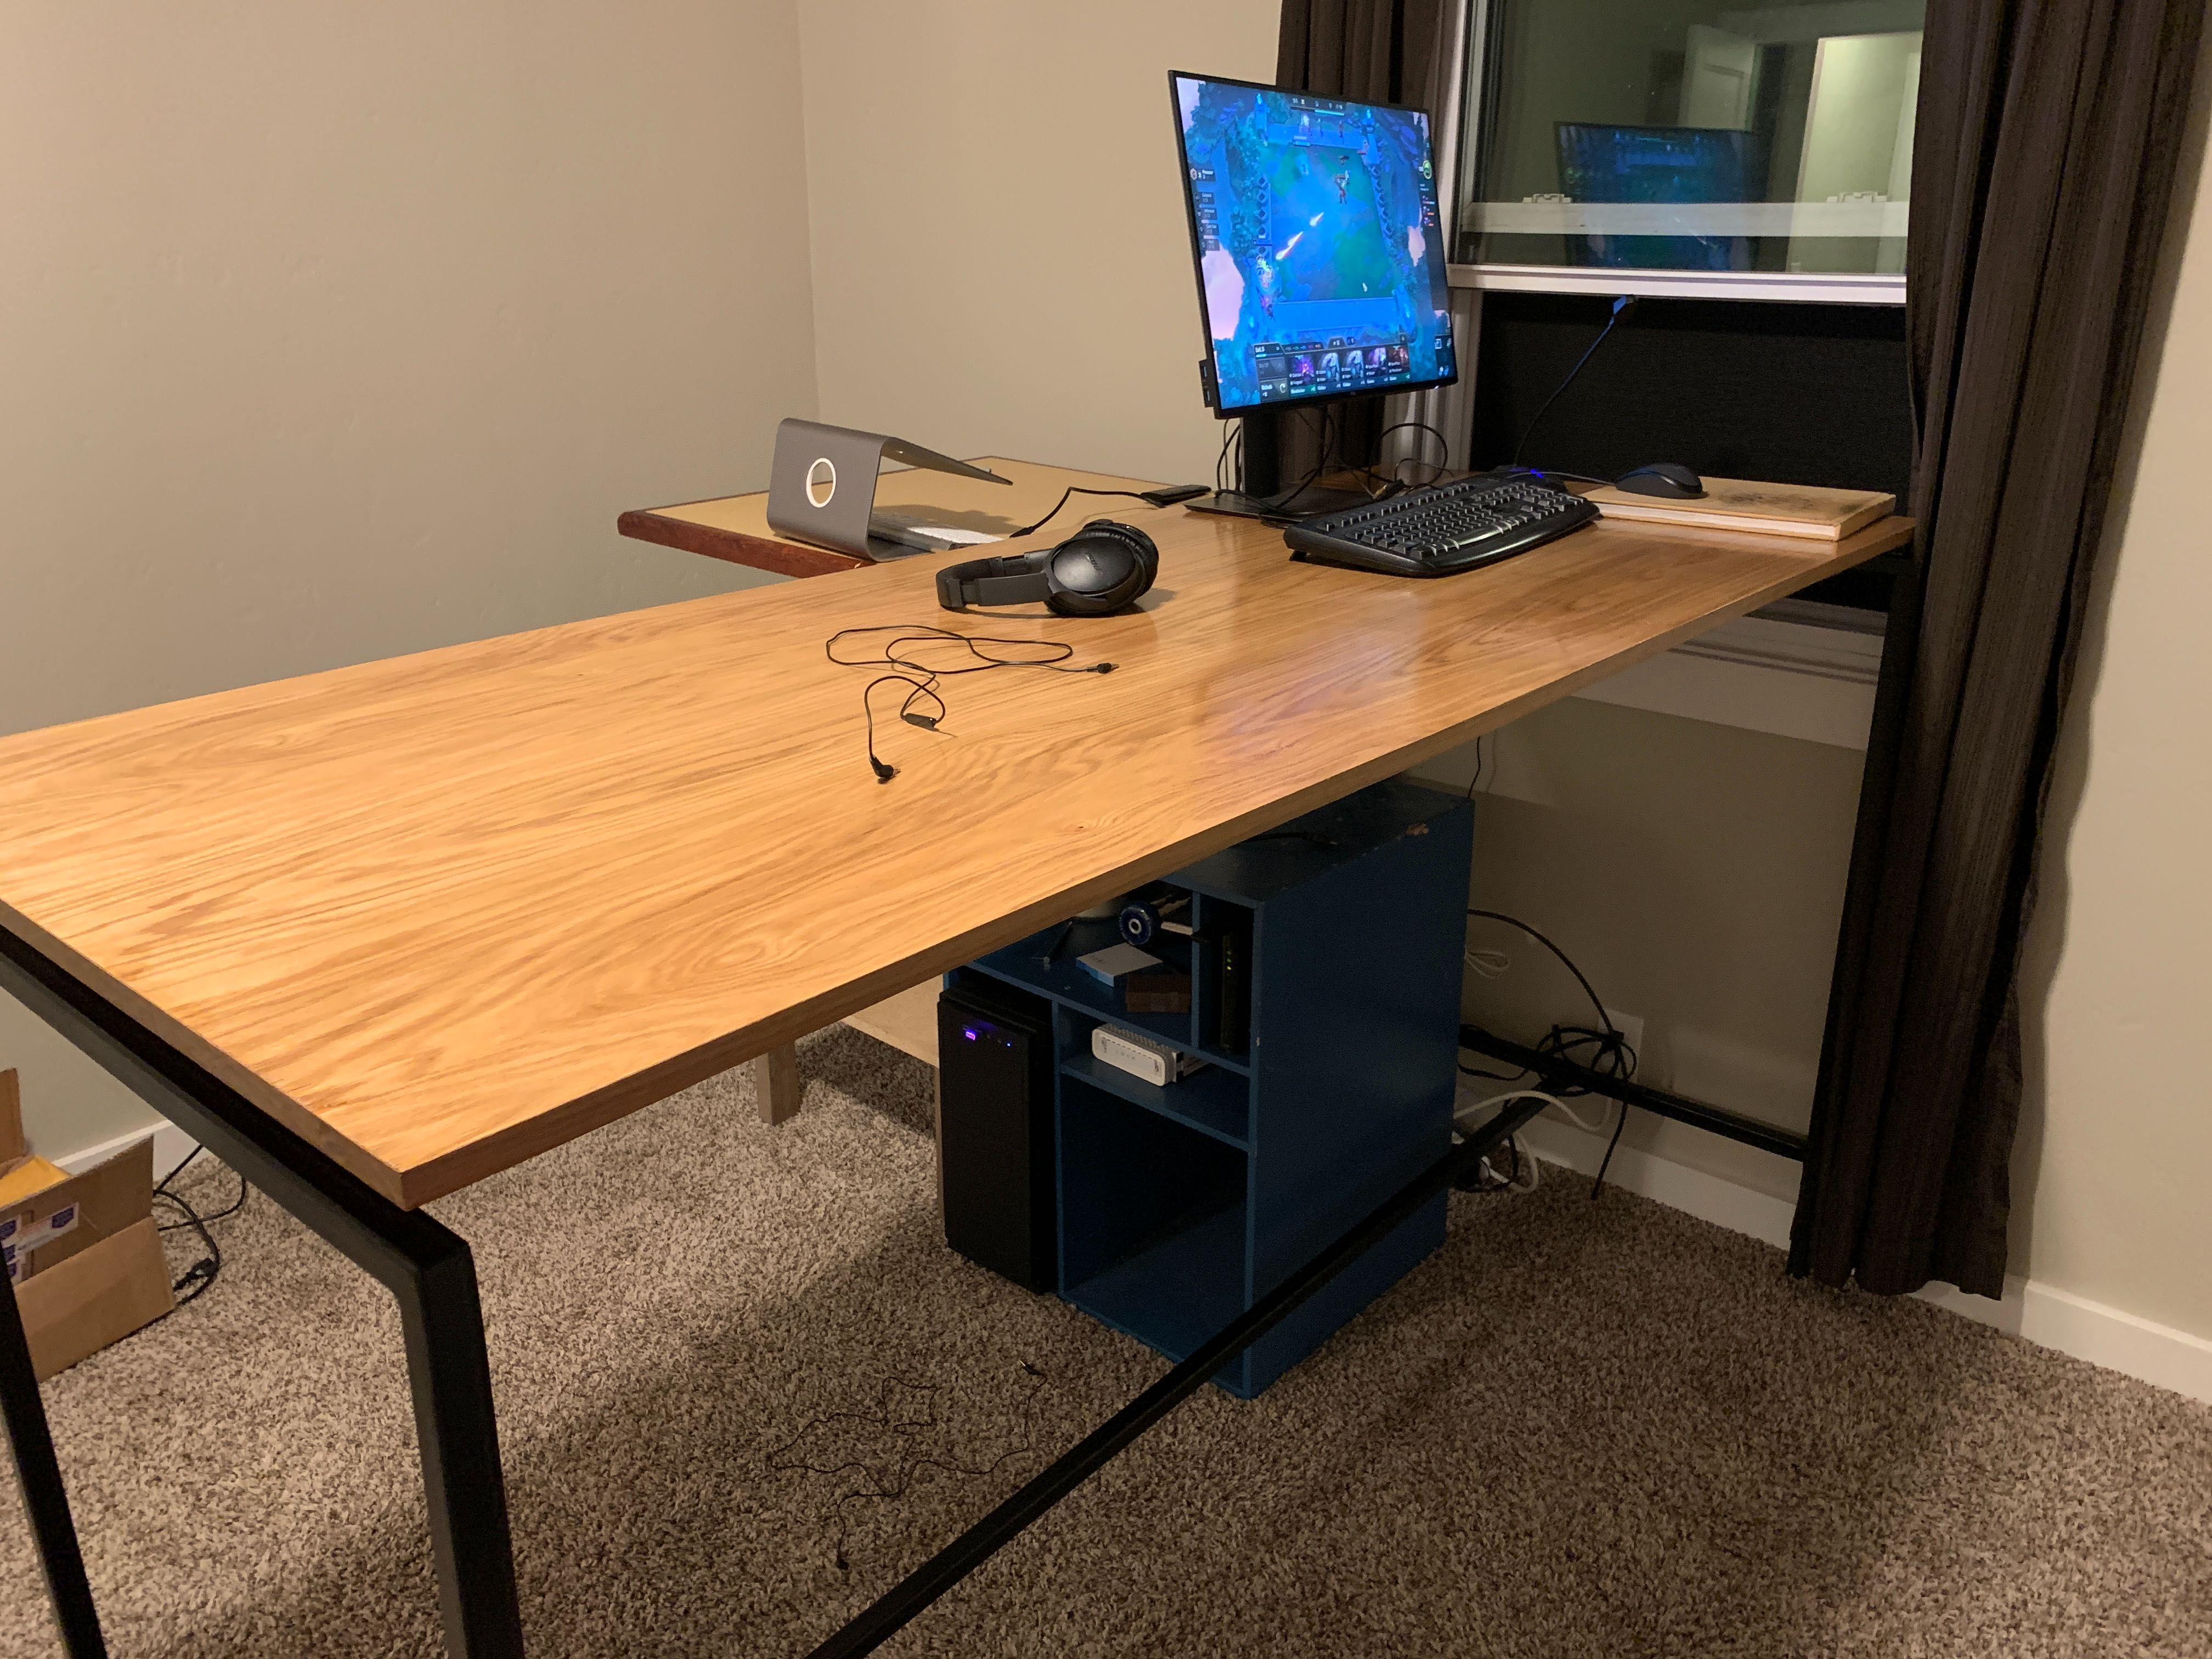 Standing Desk Welded Steel Tubing Frame With Smooth Plywood Top Handmade Crafts Howto Diy In 2020 Plywood Desk Home Upgrades Standing Desk